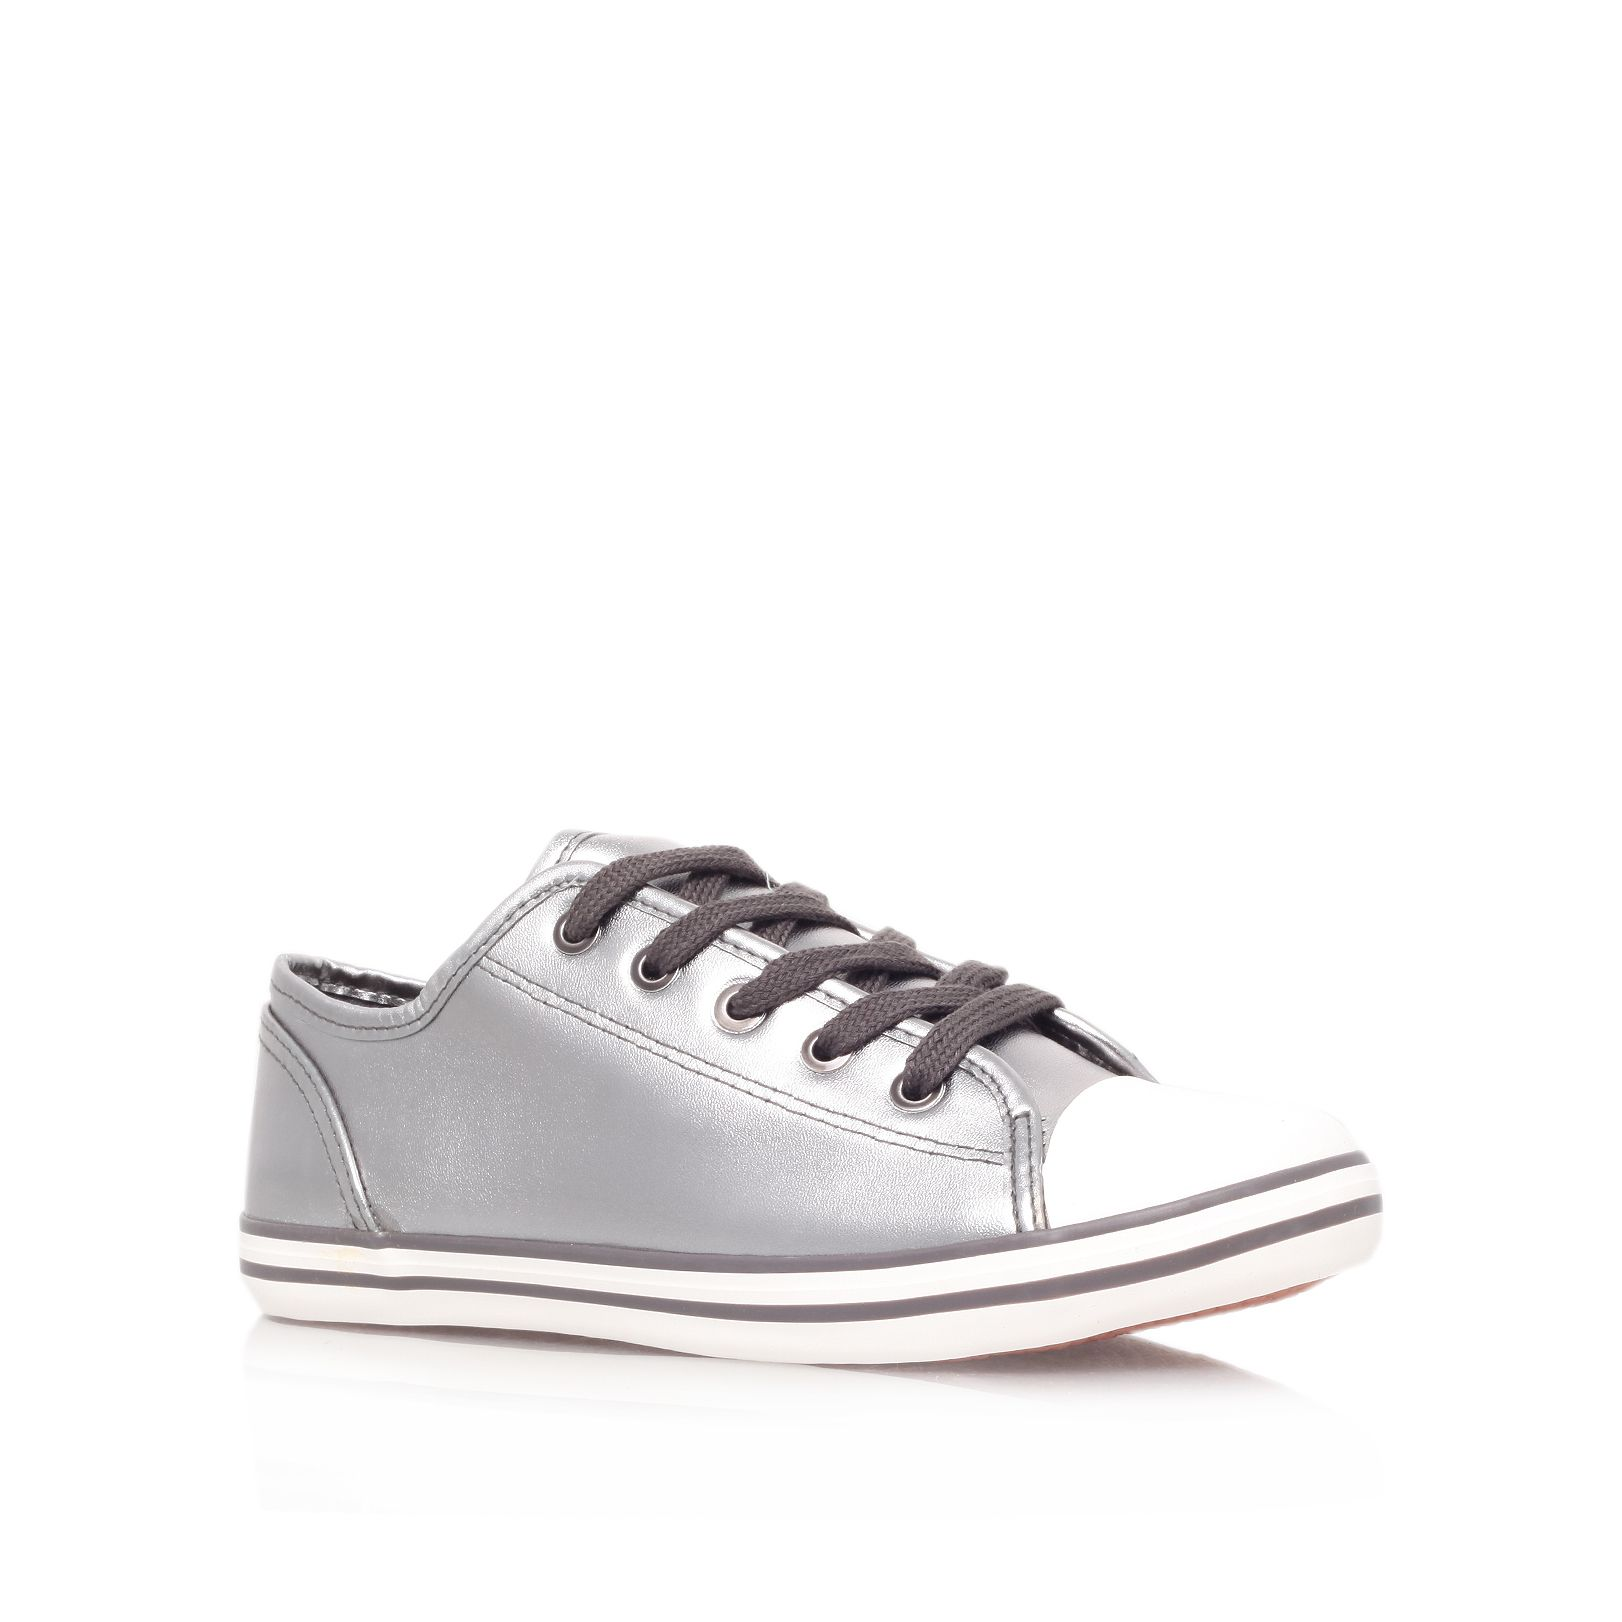 Leni flat low top trainers